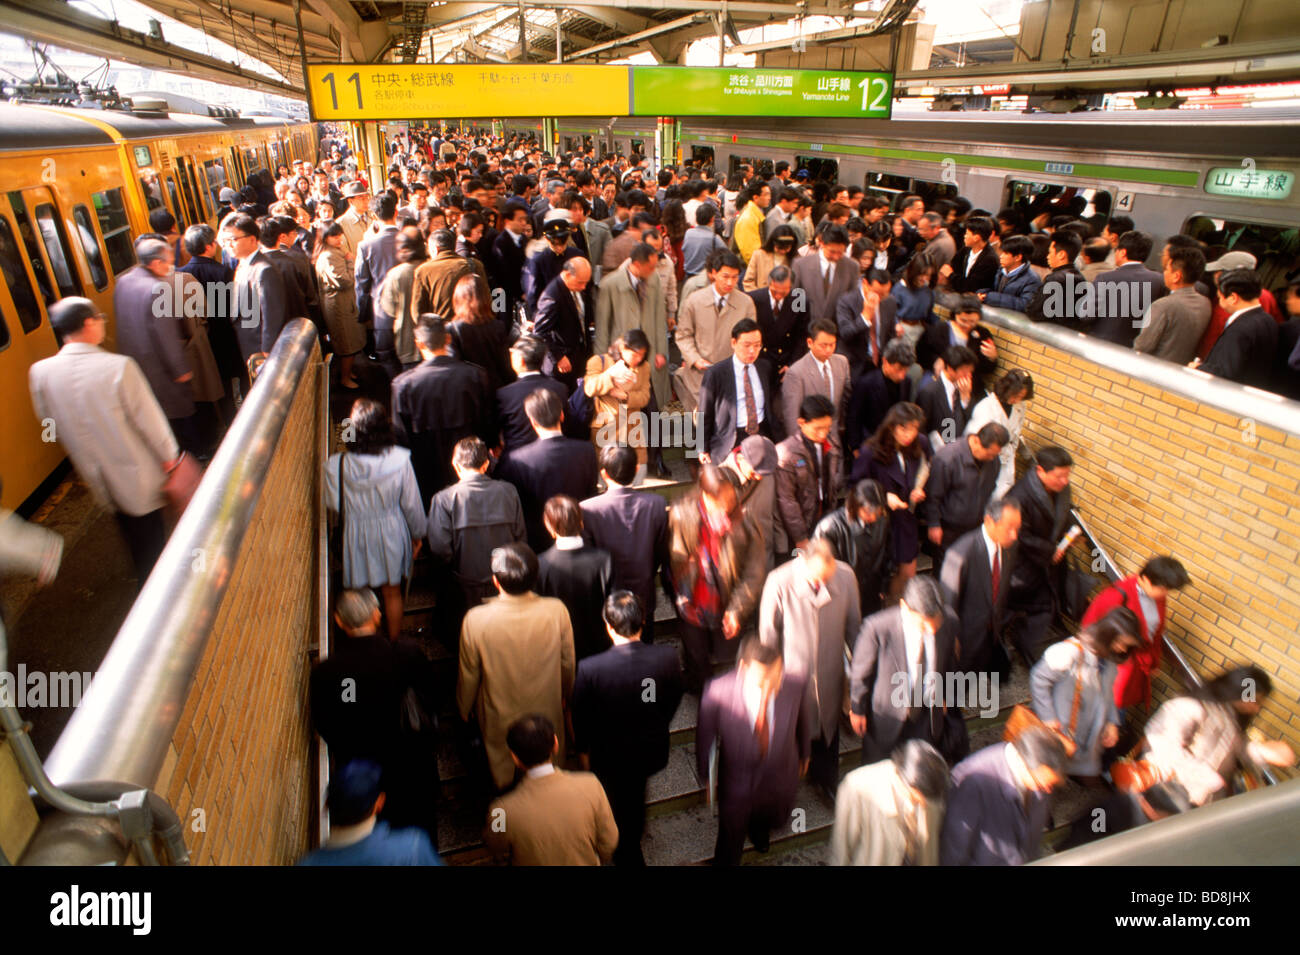 Commuter traffic entering and leaving in motion at city subway station in Tokyo Stock Photo